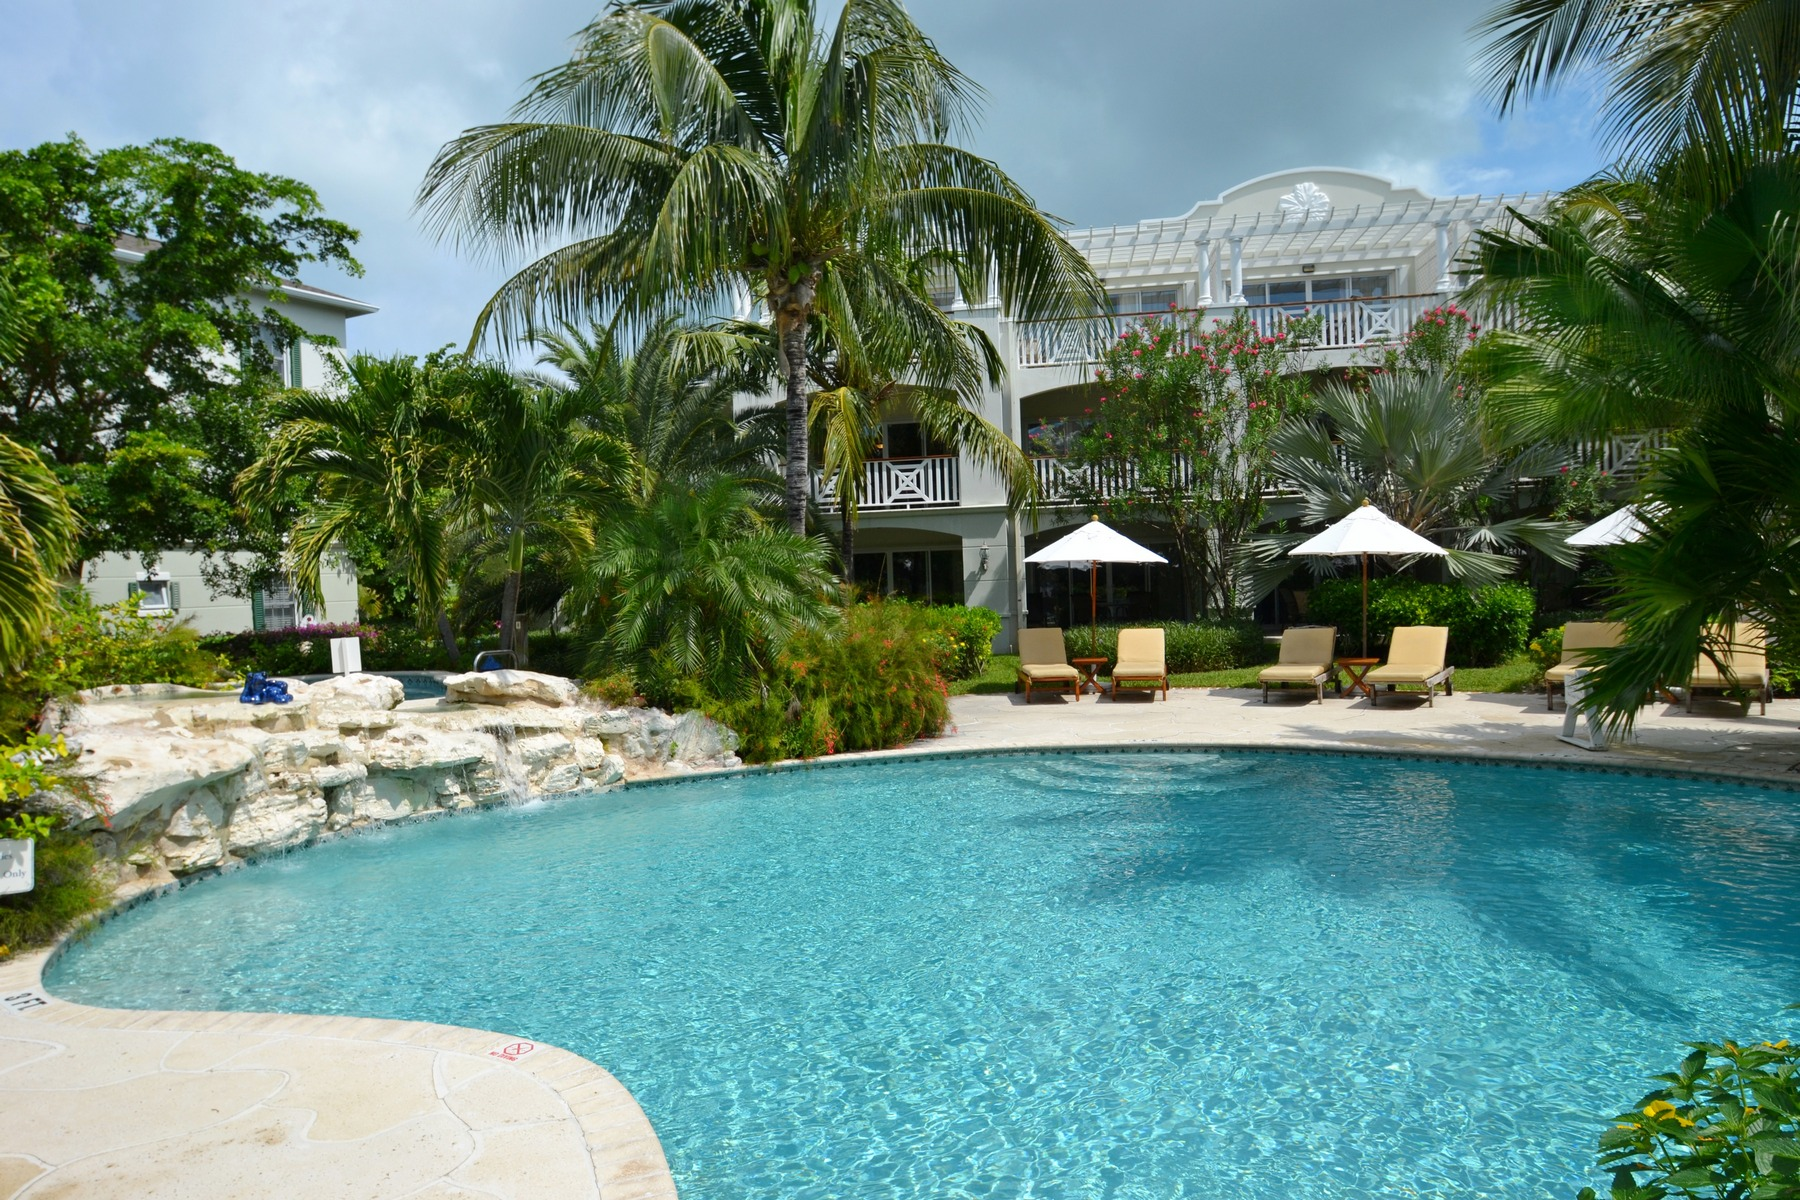 Condominium for Sale at Royal West Indies - Suite 625 Other Turks And Caicos Islands, Other Areas In The Turks And Caicos Islands Turks And Caicos Islands